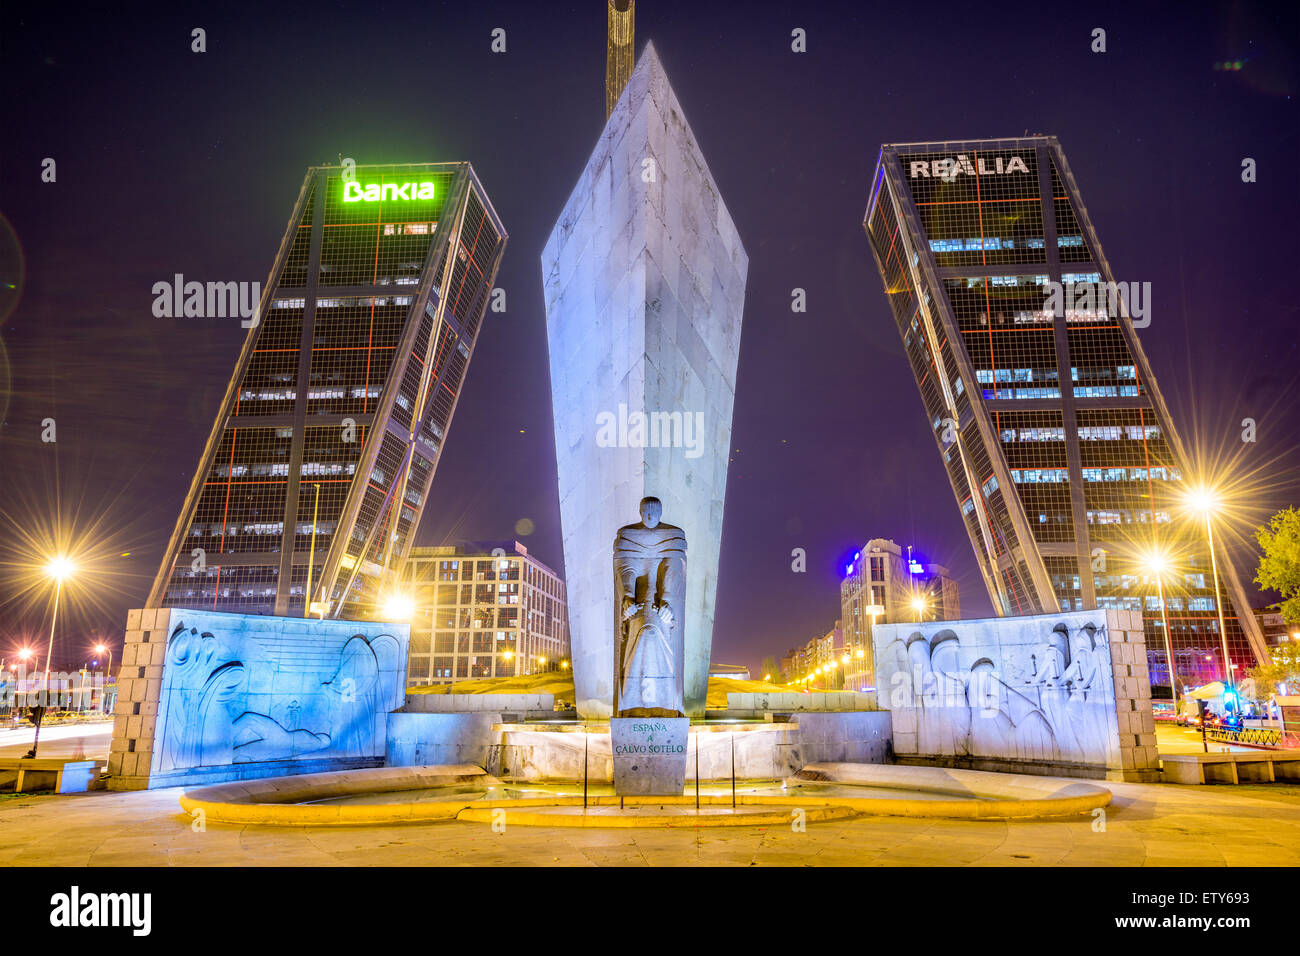 MADRID, SPAIN - OCTOBER 16, 2014: Puerta De Europa towers as viewed from Plaza de Castilla. - Stock Image